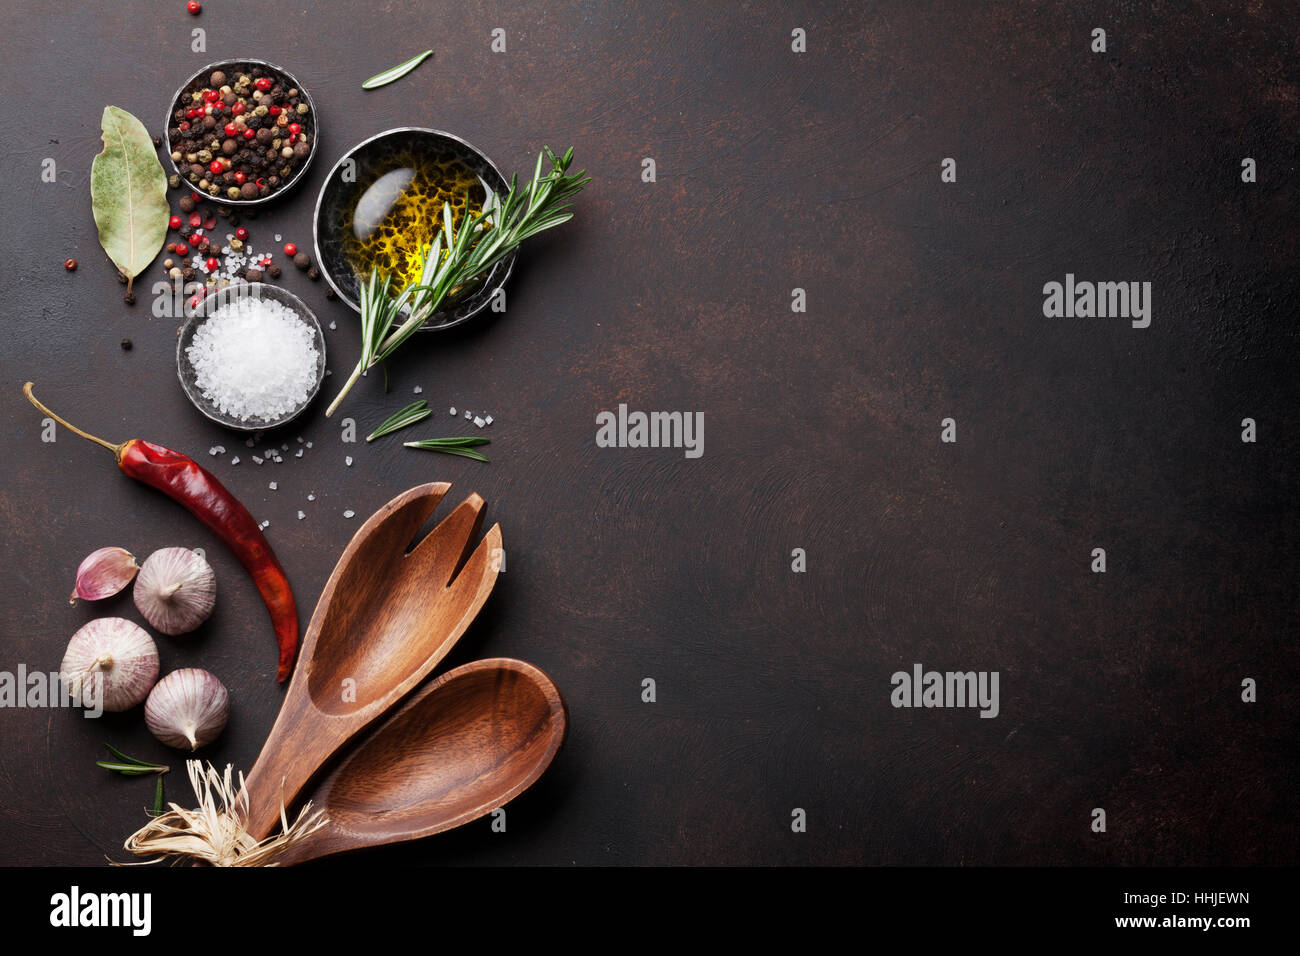 Cooking table with herbs, spices and utensils. Top view with copy space - Stock Image